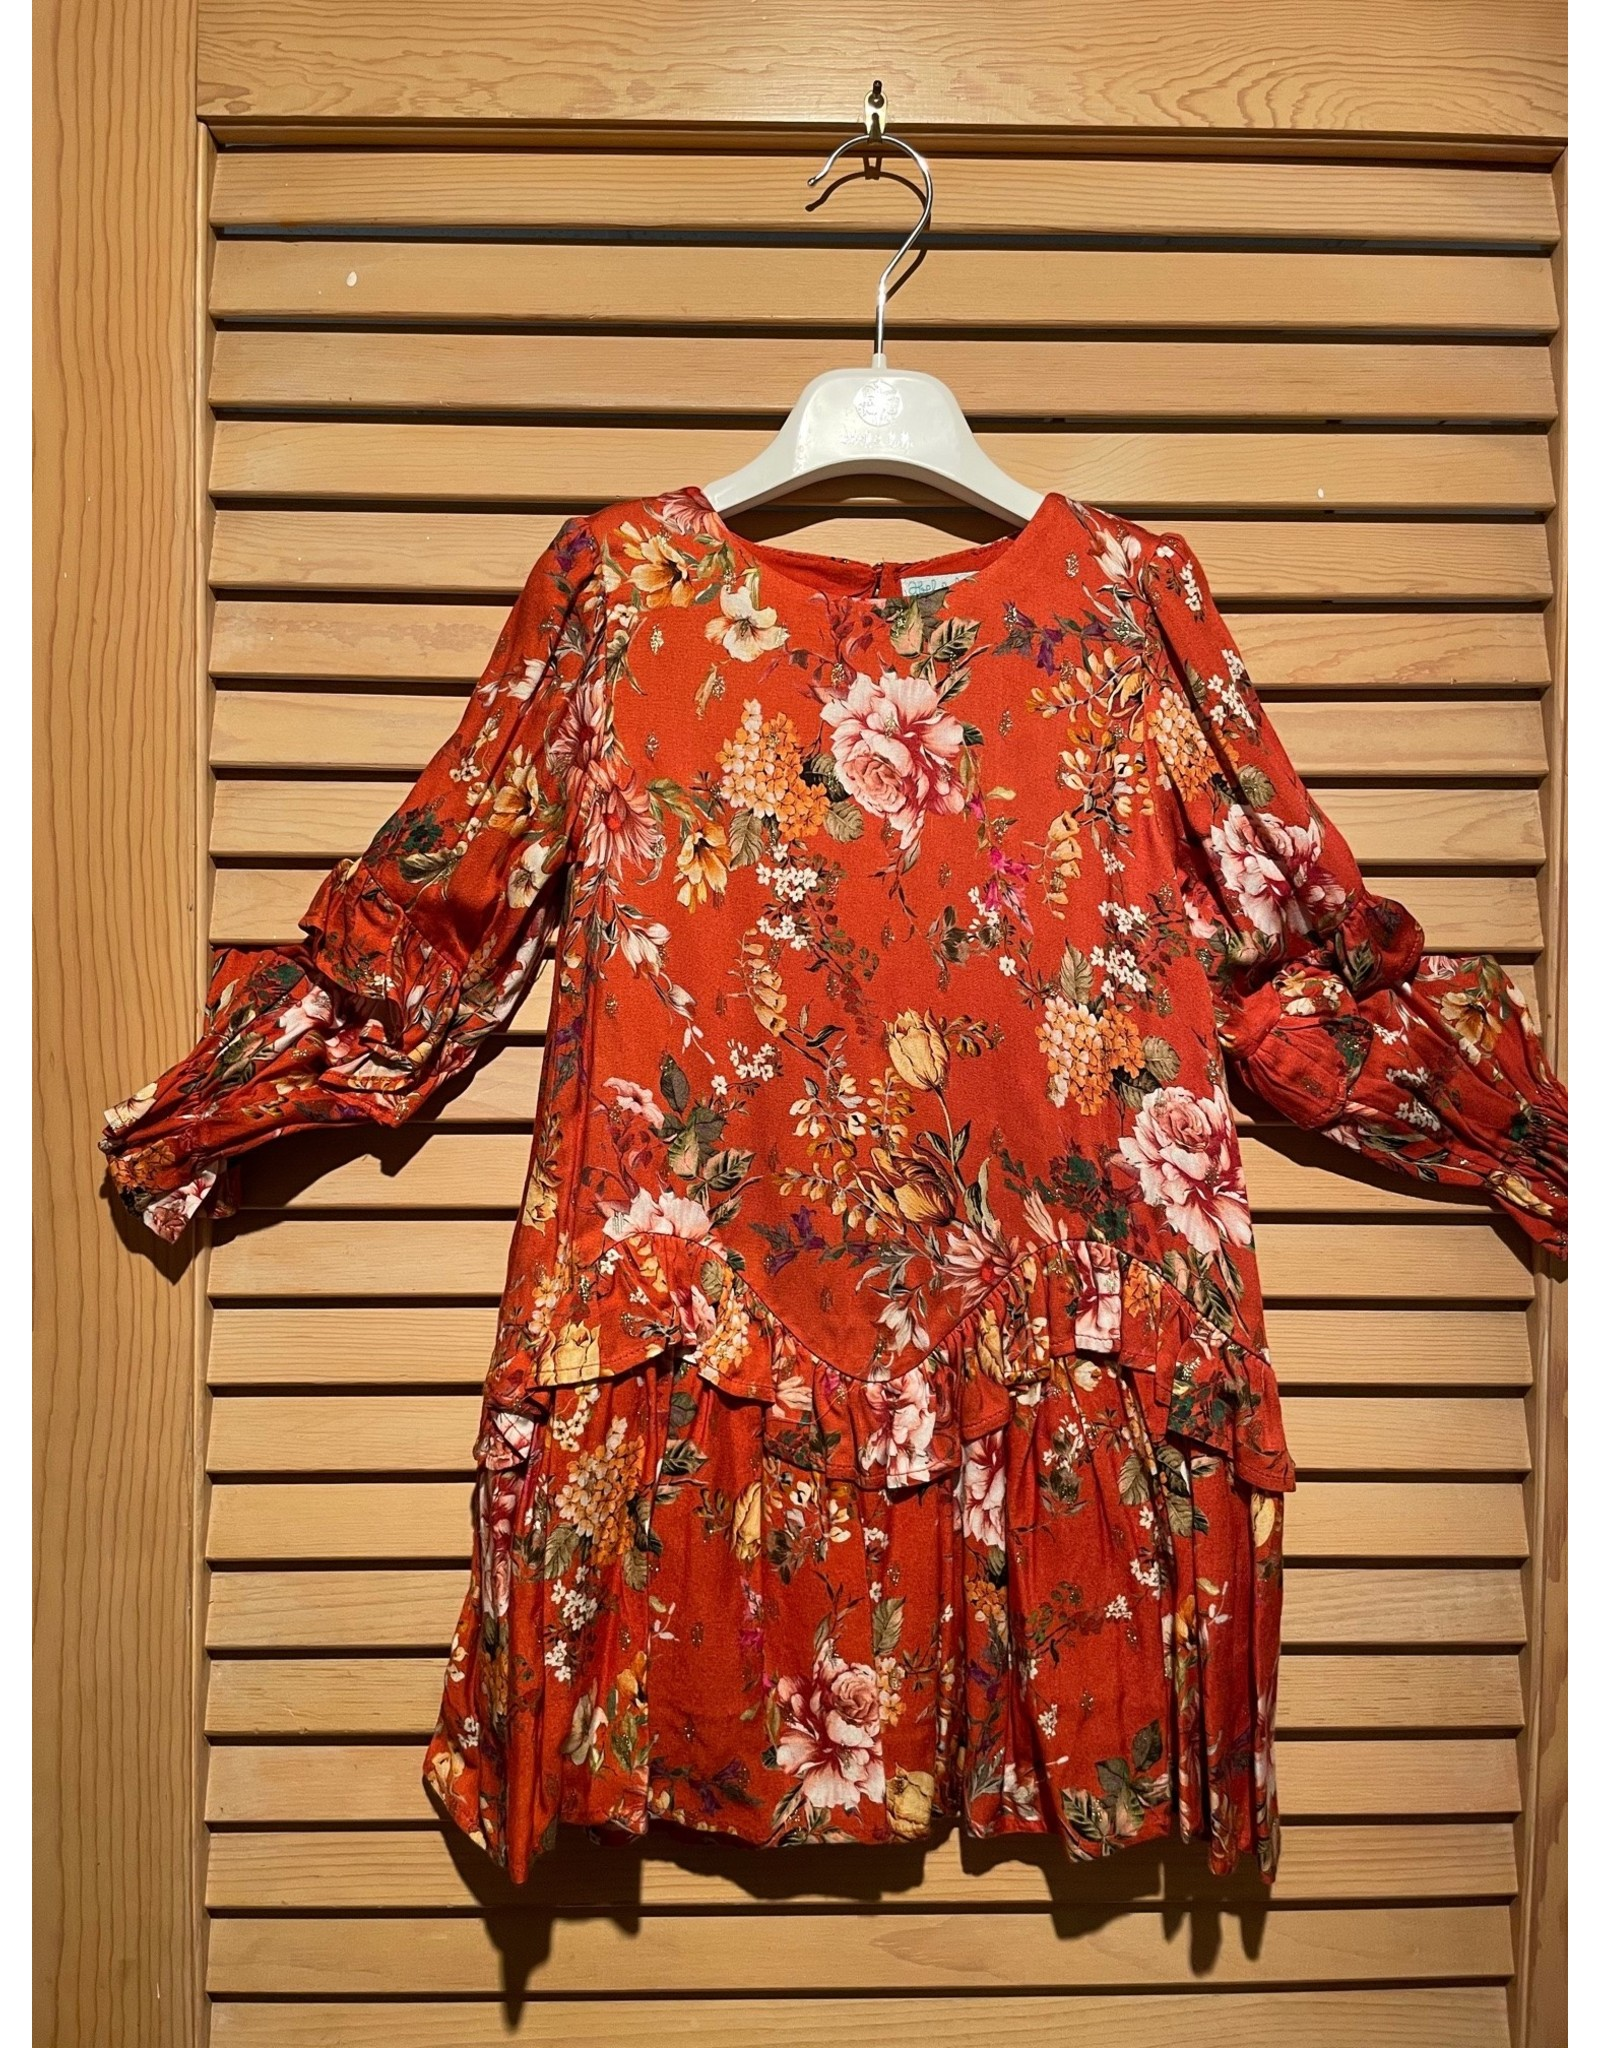 Abel & Lula Caldera Floral Dress with Ruffle Accents